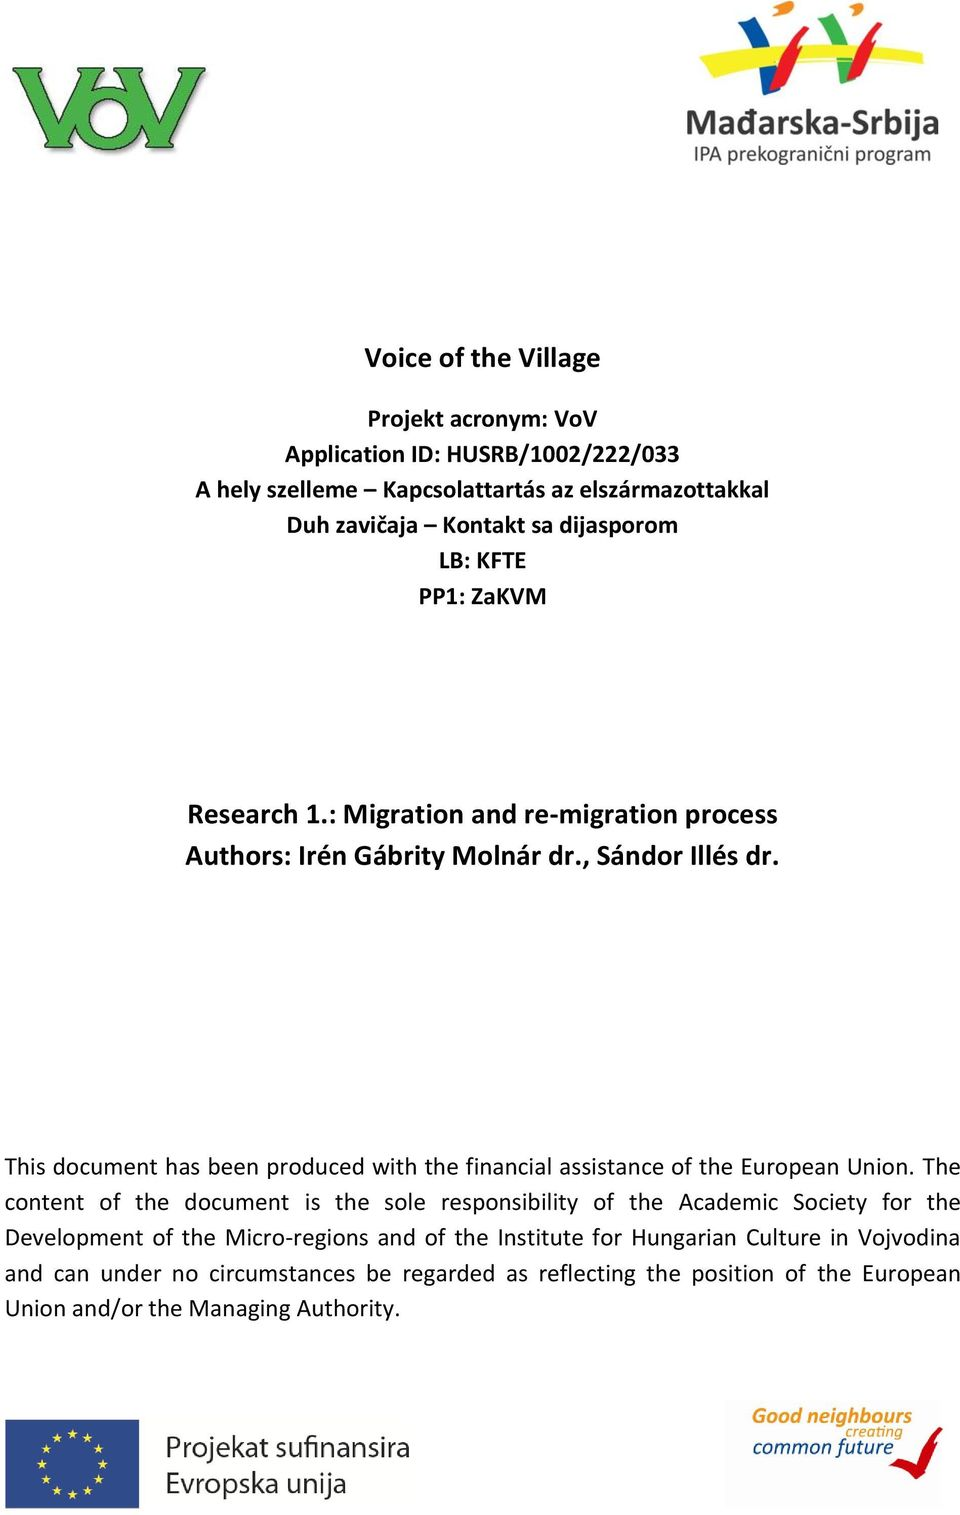 This document has been produced with the financial assistance of the European Union.